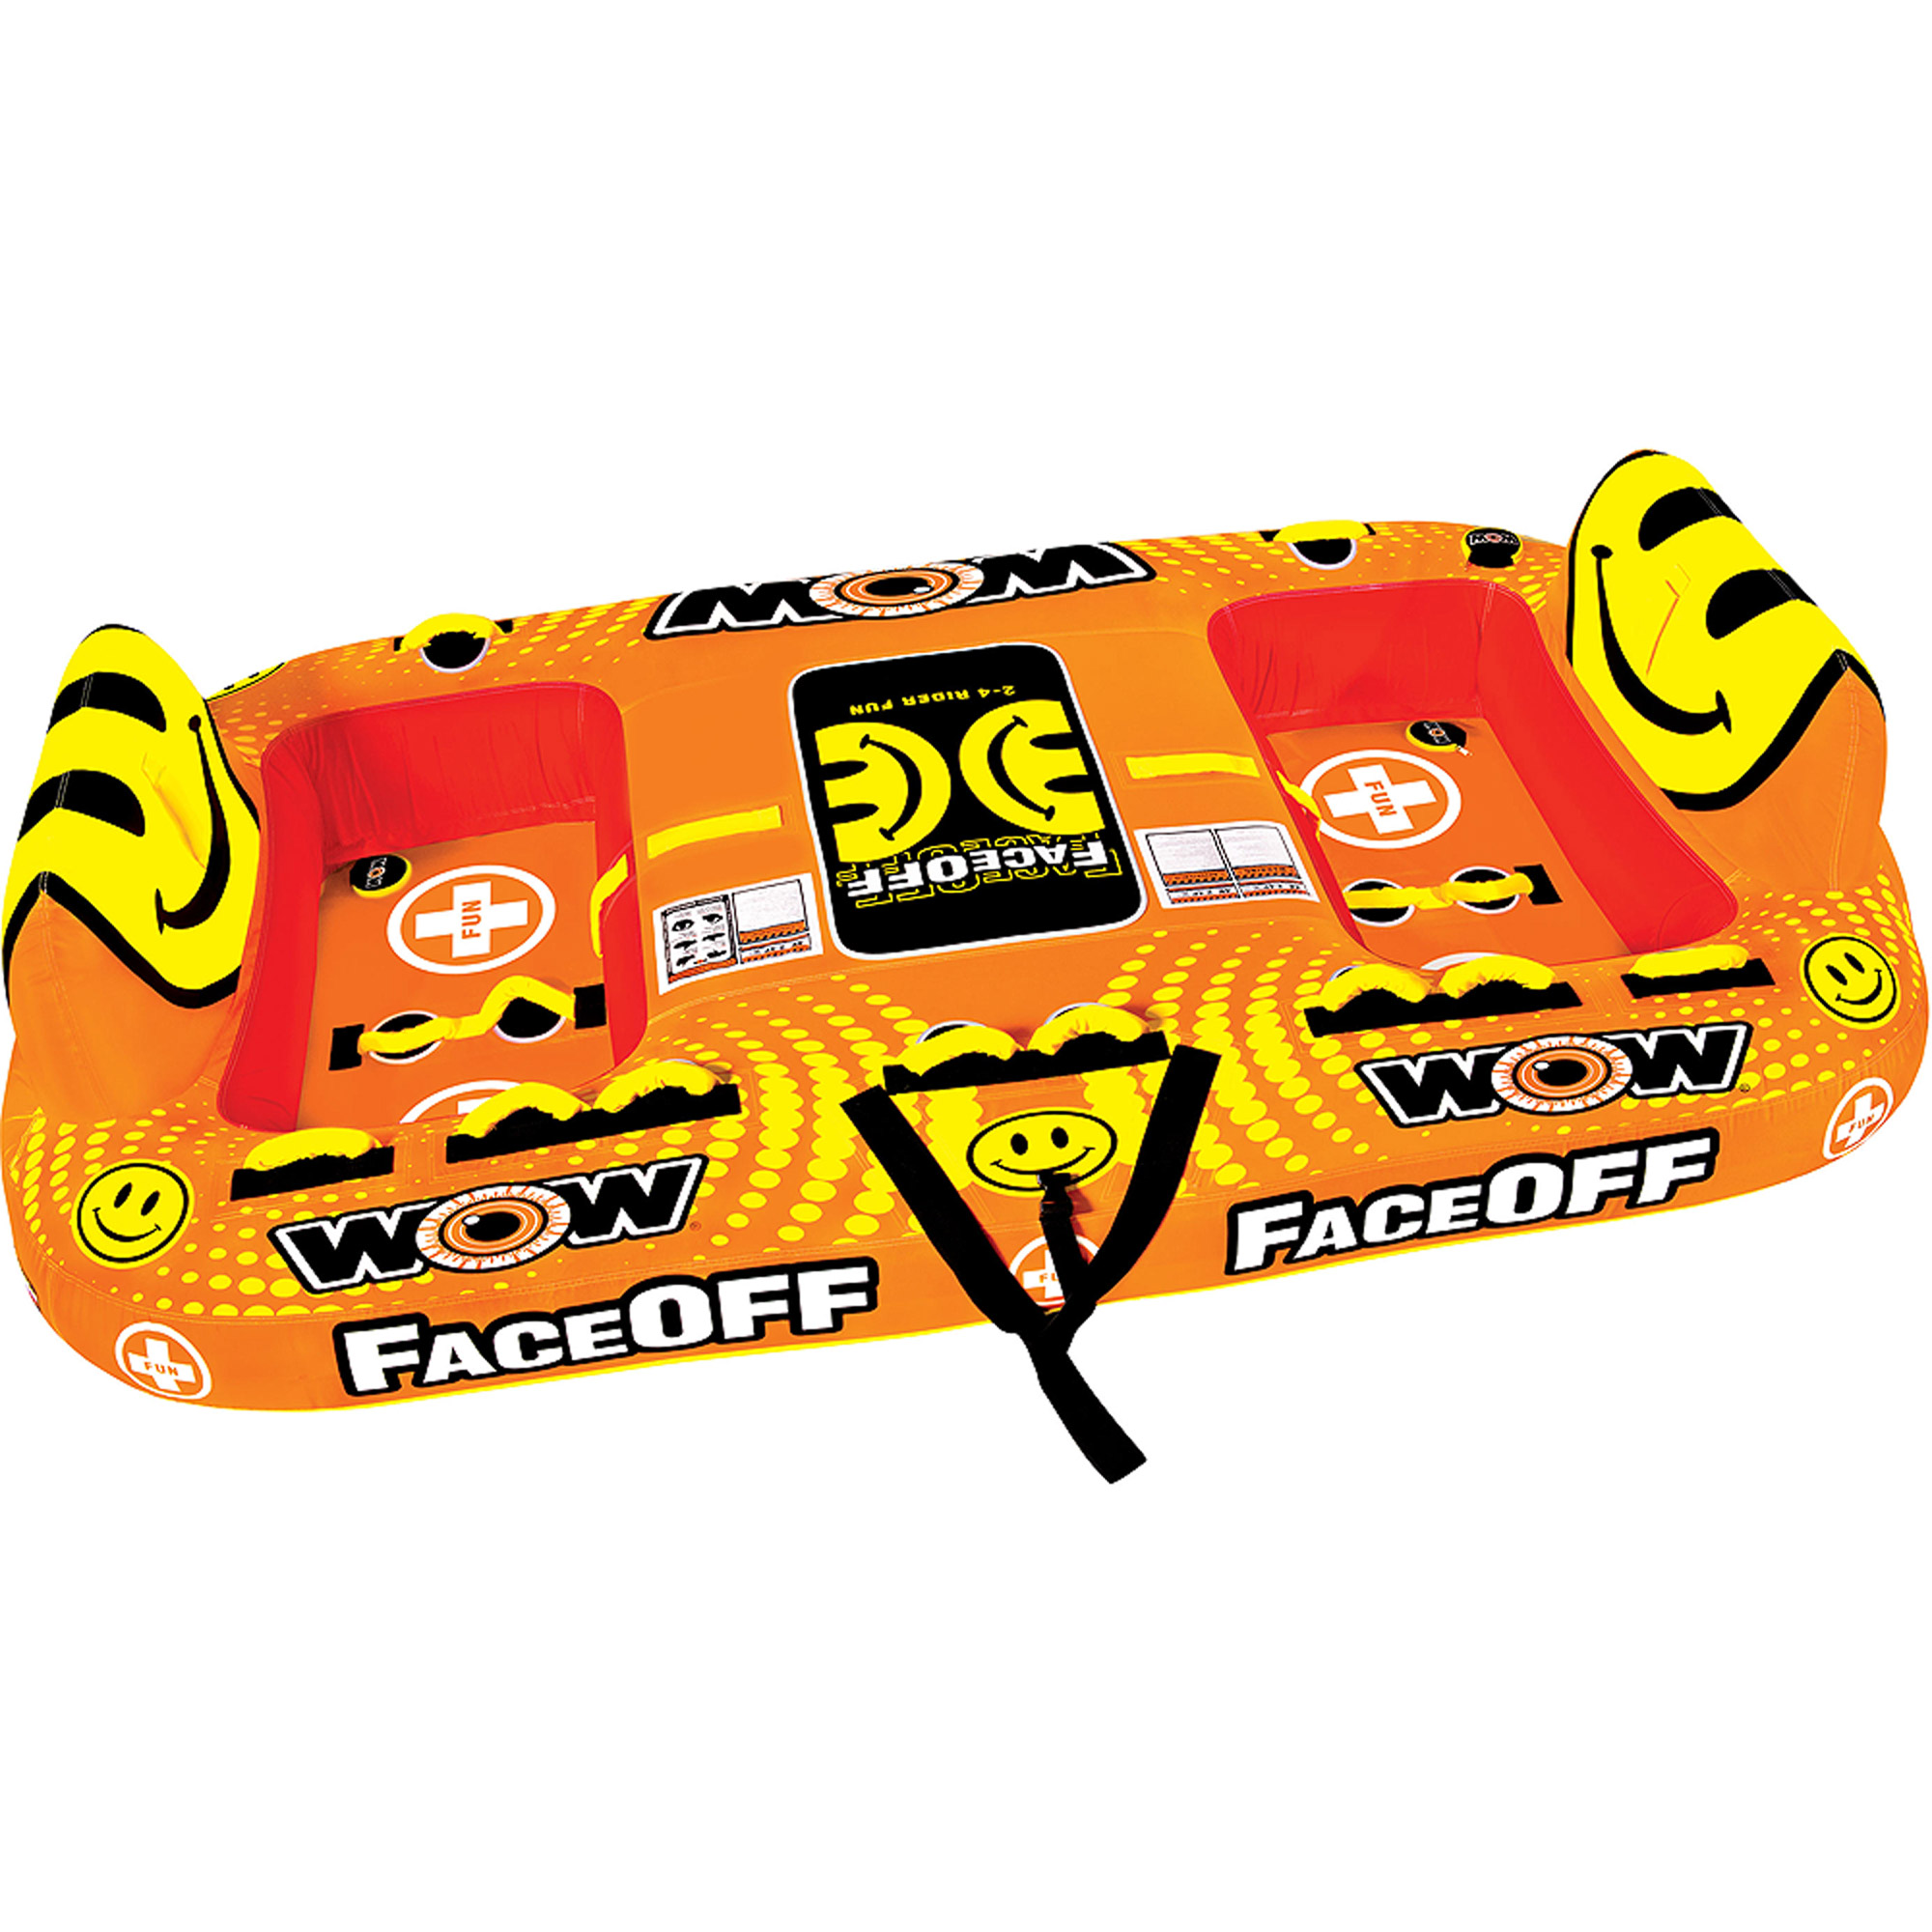 WOW World of Watersports, 15-1050, Face-Off Towable, Ride Face to Face, 1 to 4 Person by World of Watersports